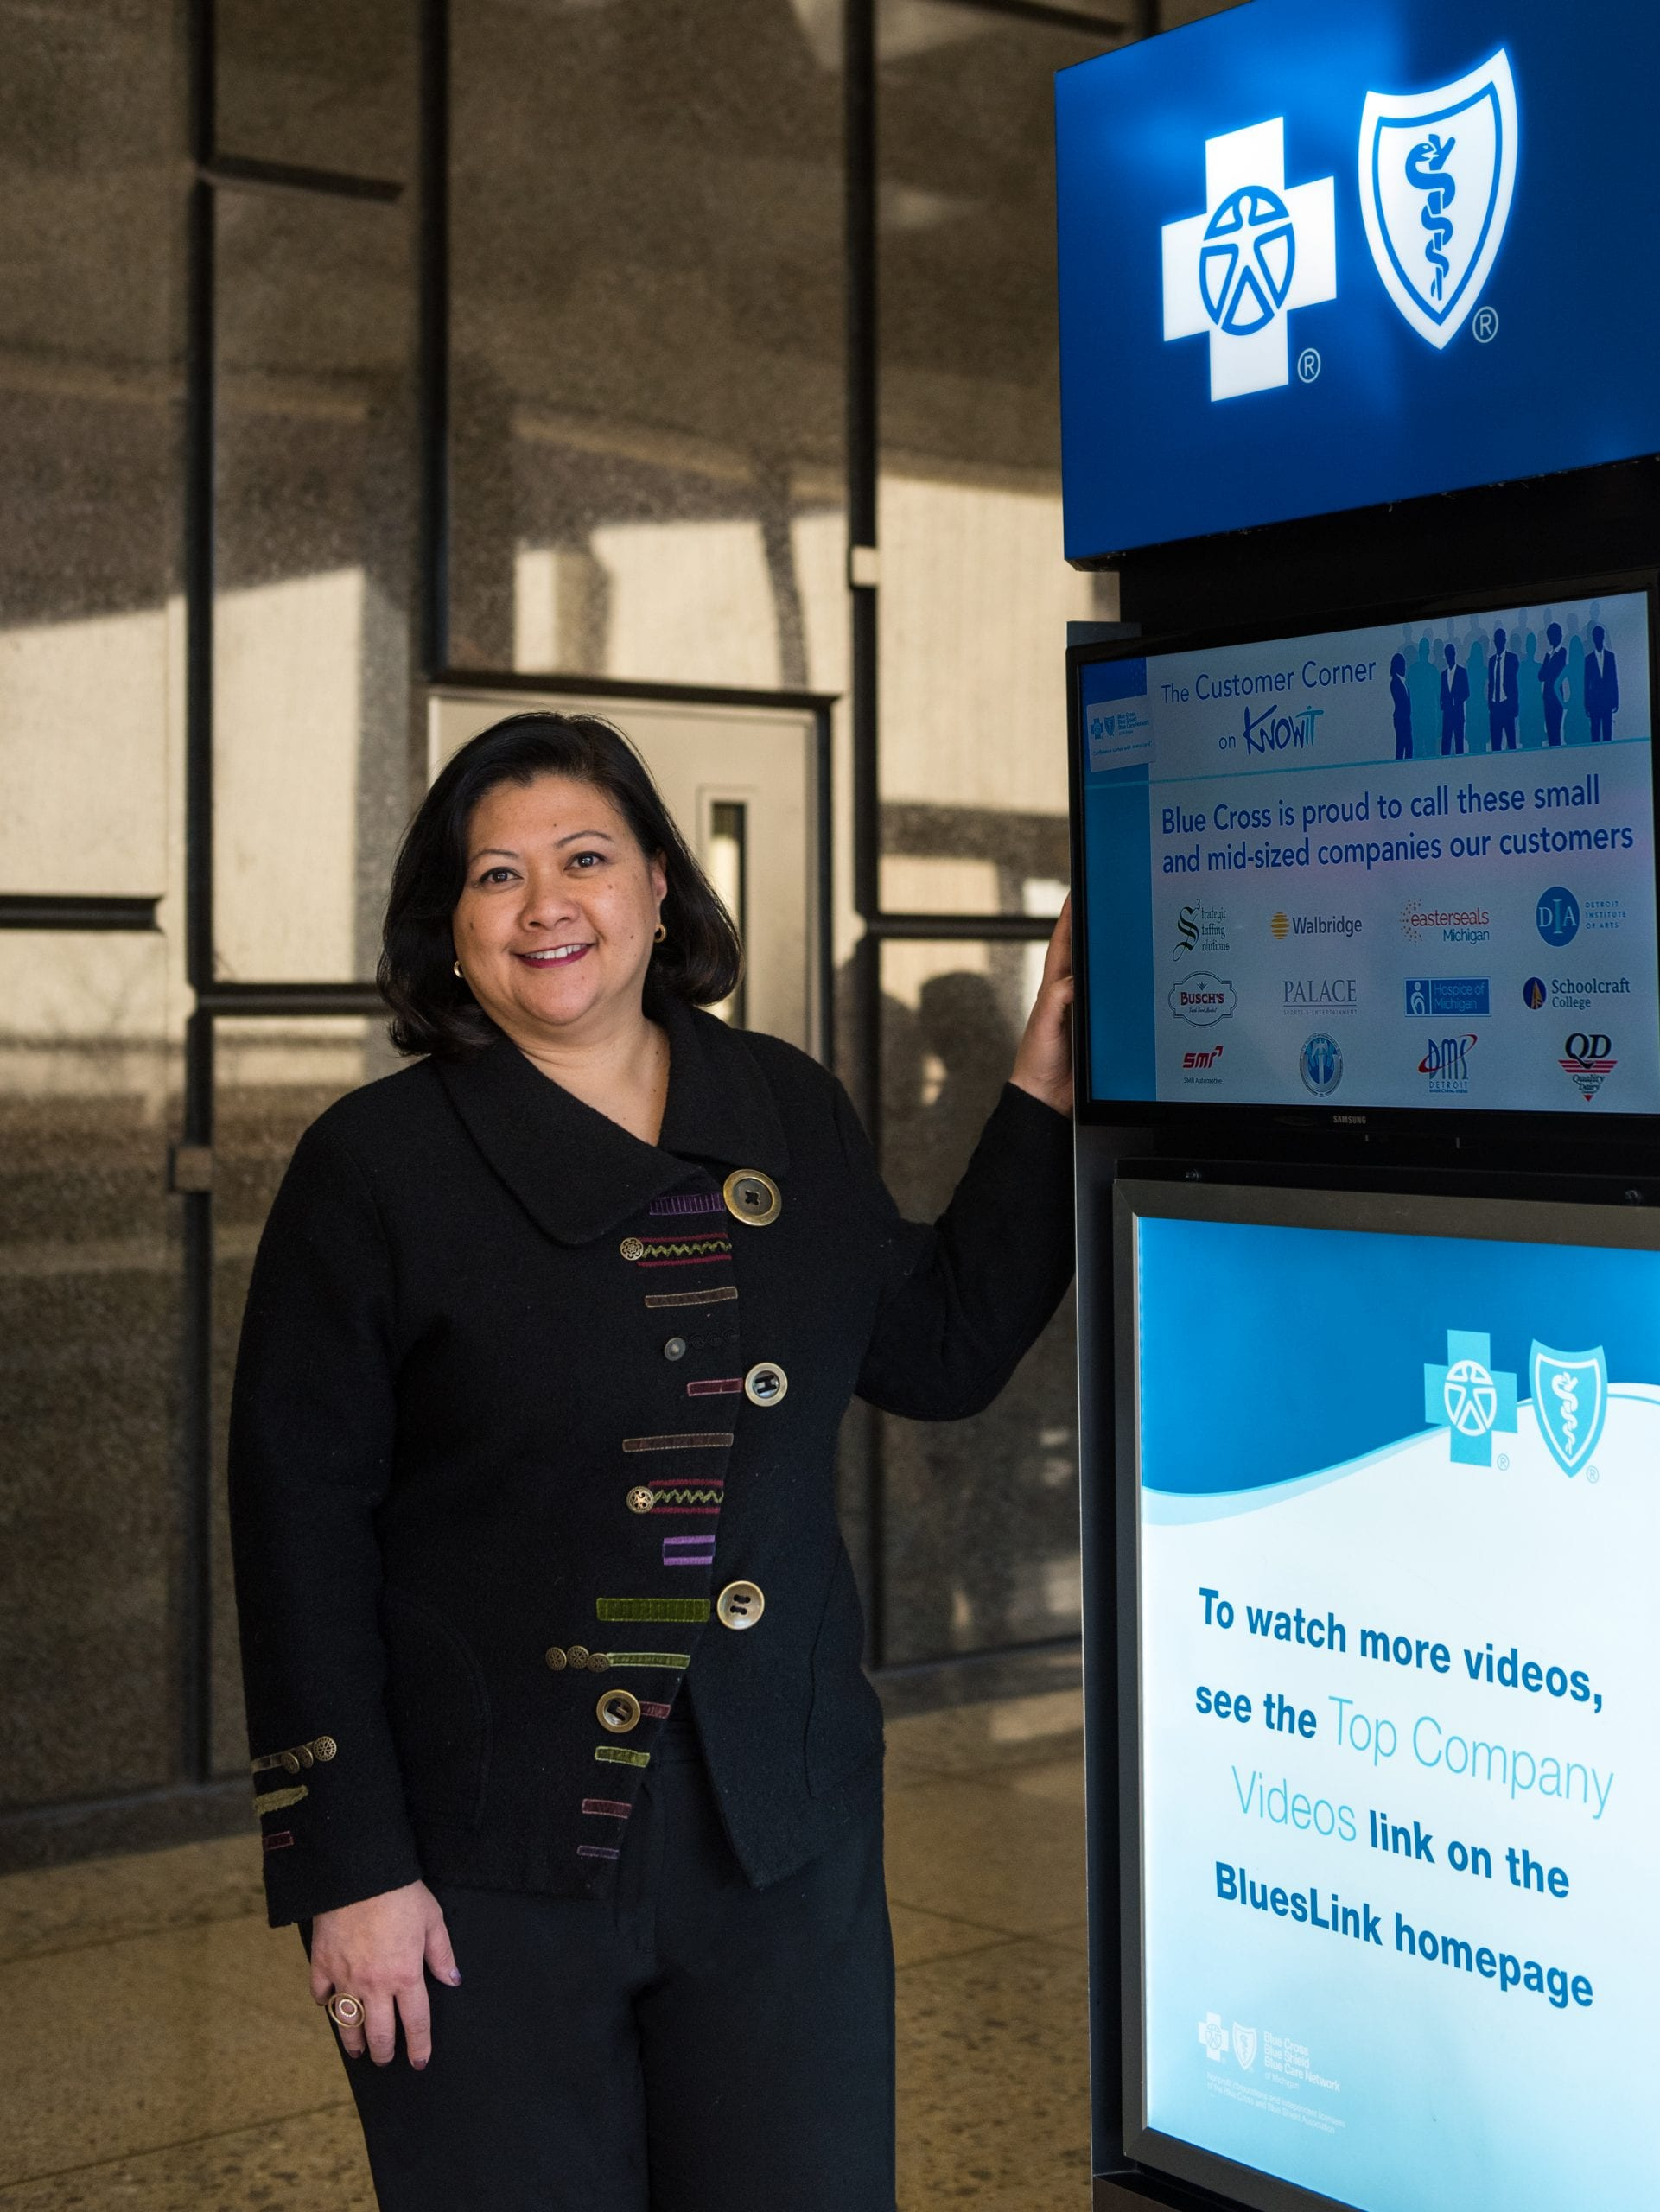 Amy Krause's Career Path to Becoming a Blue Cross IT Director